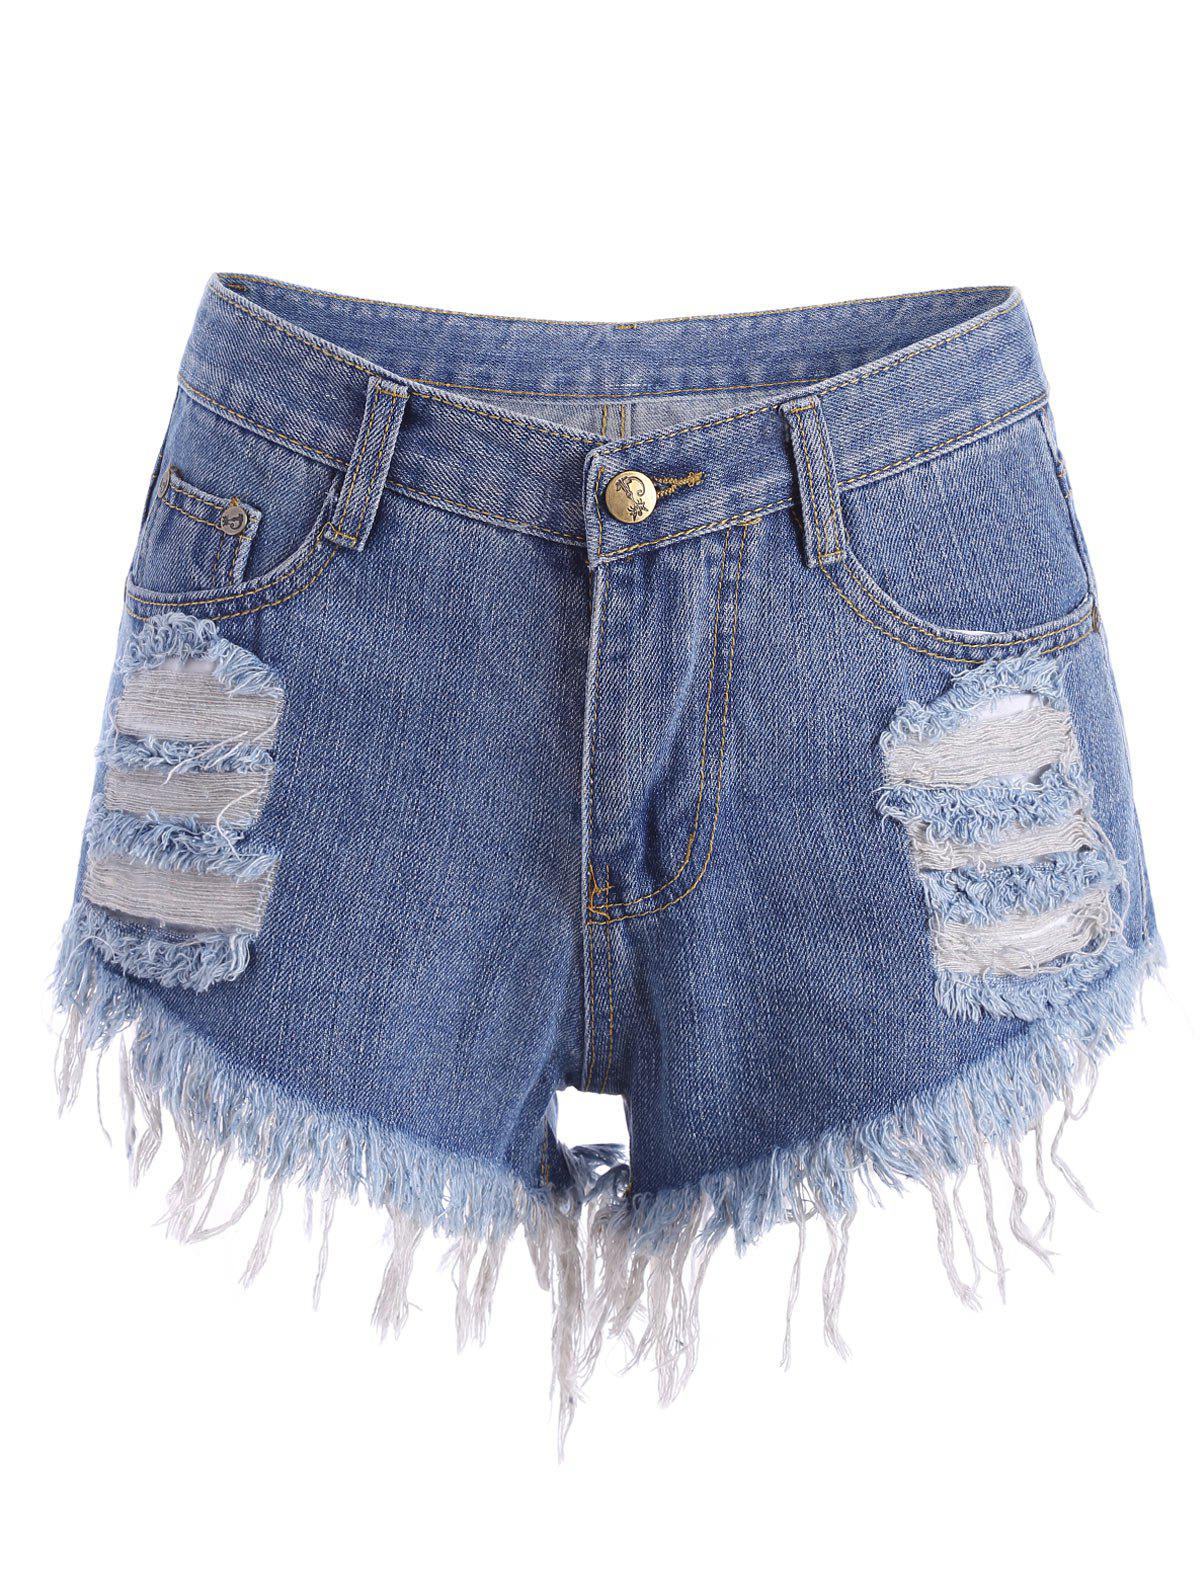 Ripped Denim Cutoffs Shorts - BLUE XL